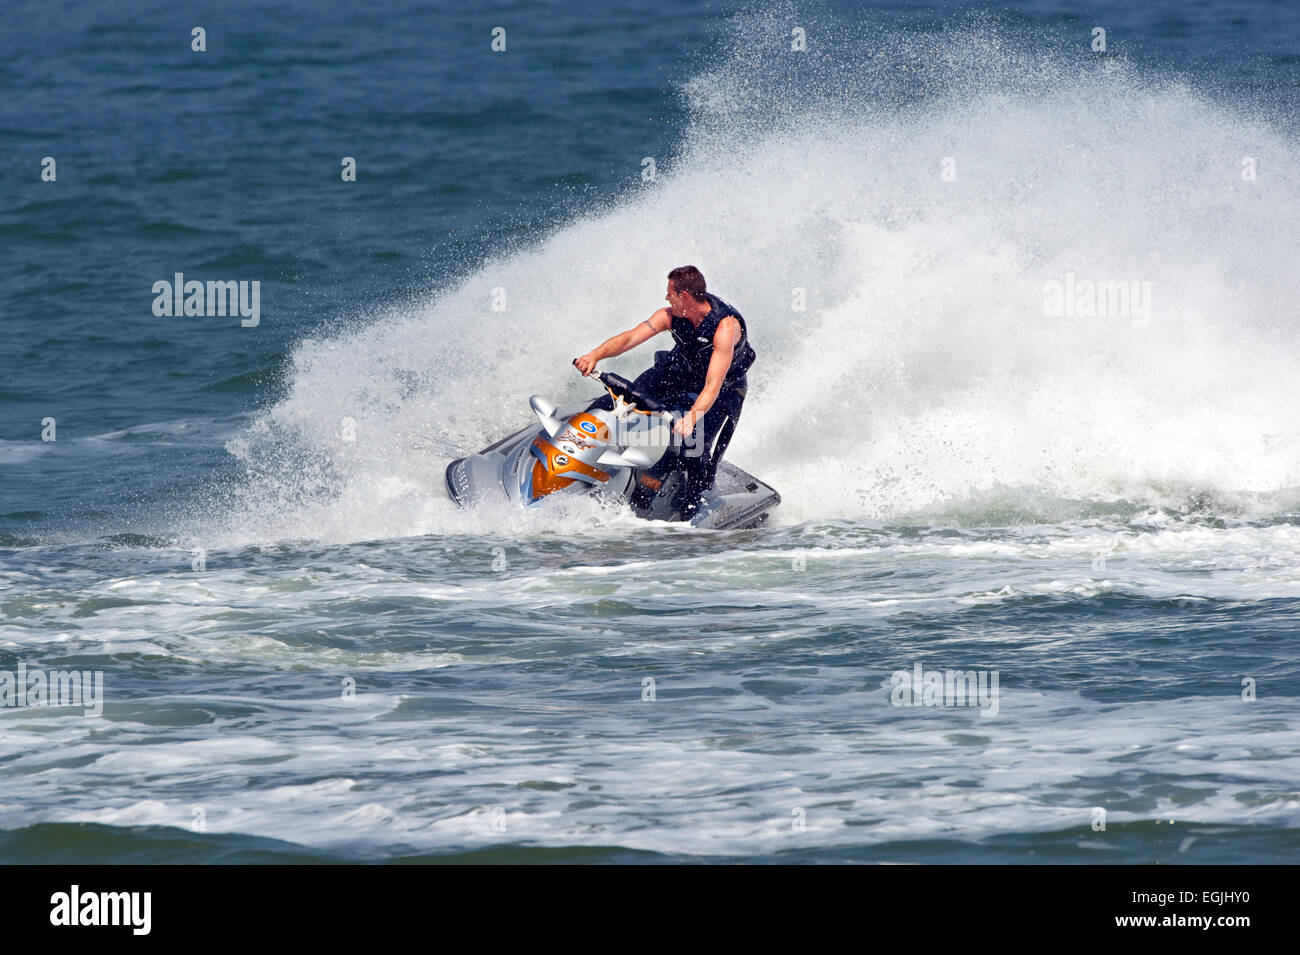 man-creating-a-splash-on-jet-ski-EGJHY0.